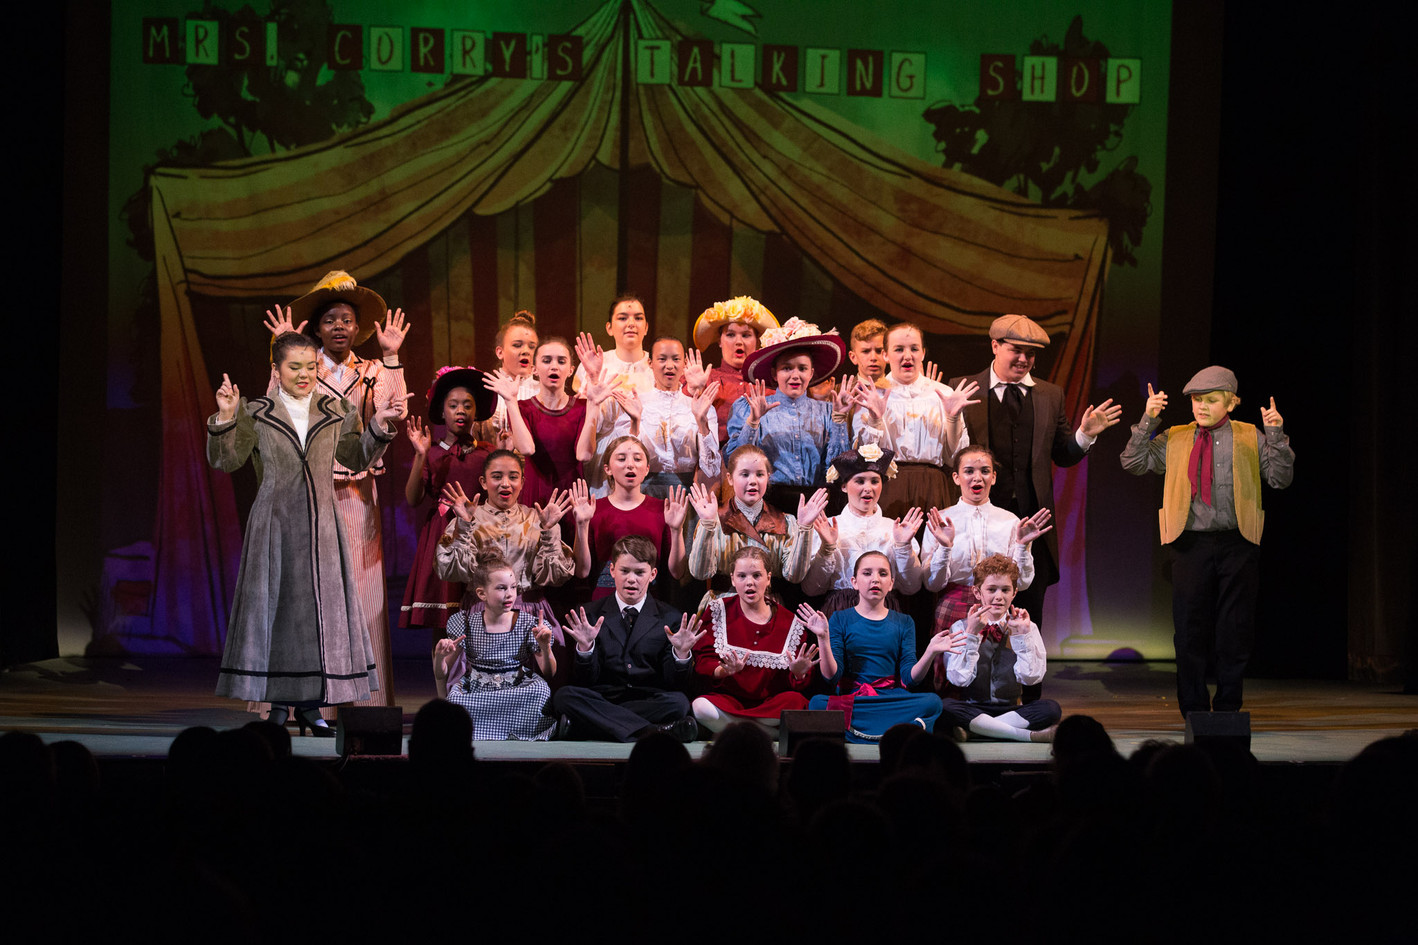 Mary Poppins Cast at Theatre of the Republic